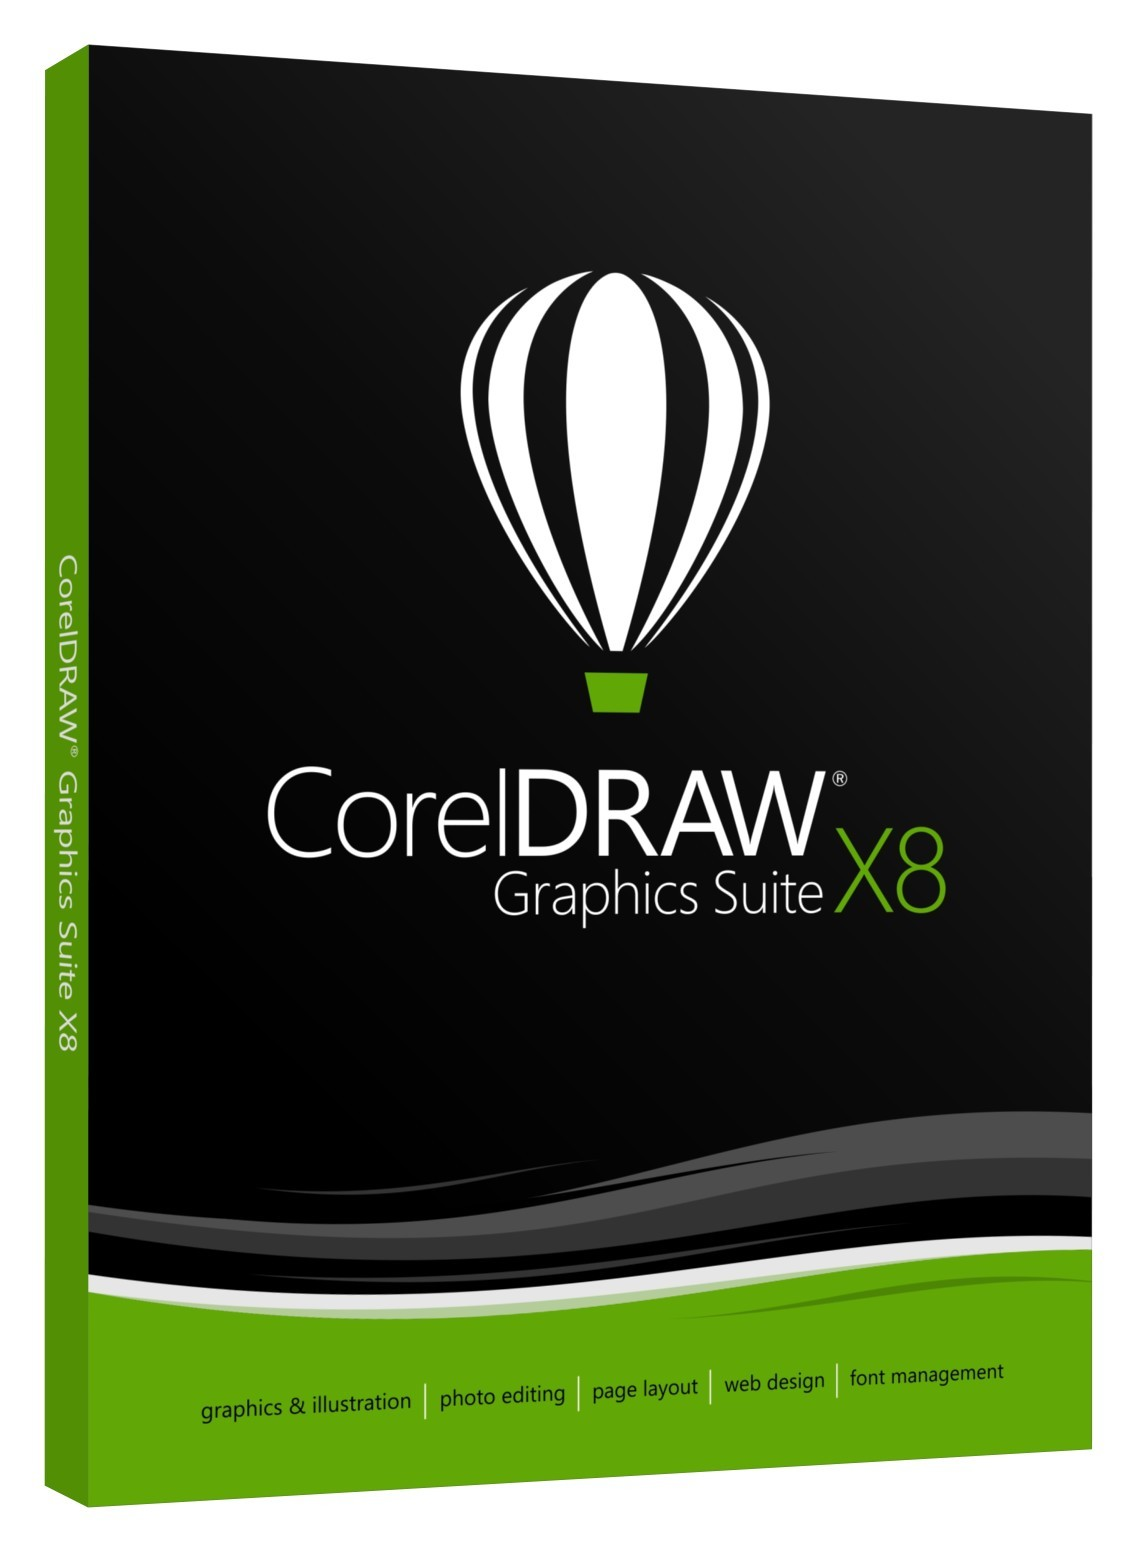 CorelDRAW Graphic Suite x8 ISO Multilingual 32 64 Bit Download